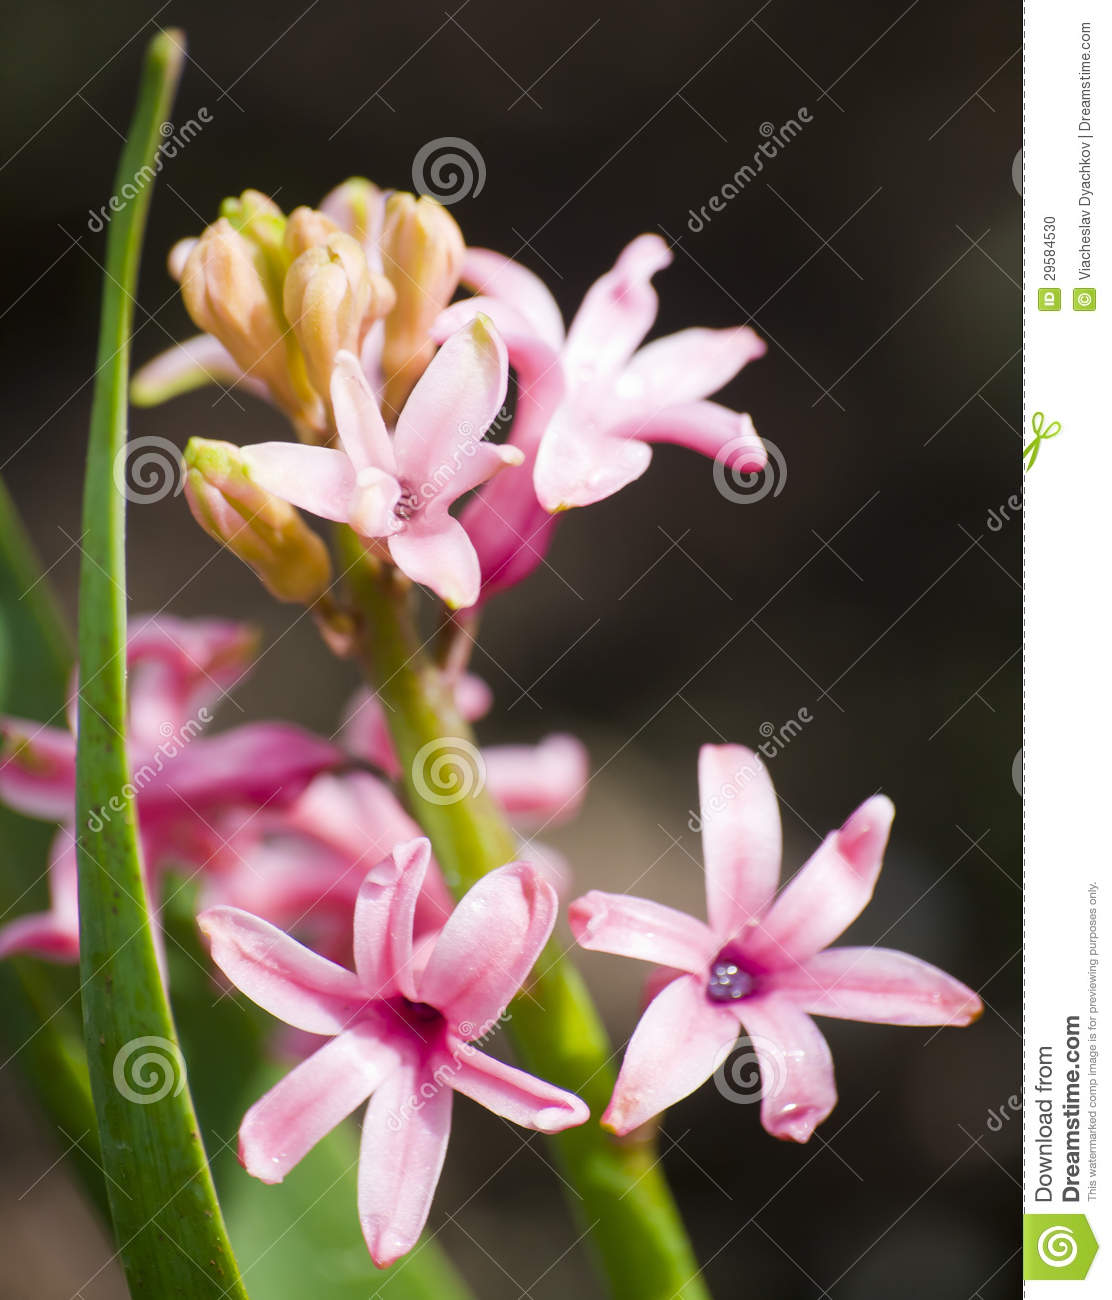 Pink Flowers On The Stem With The Green Thin And Long Leaves On The